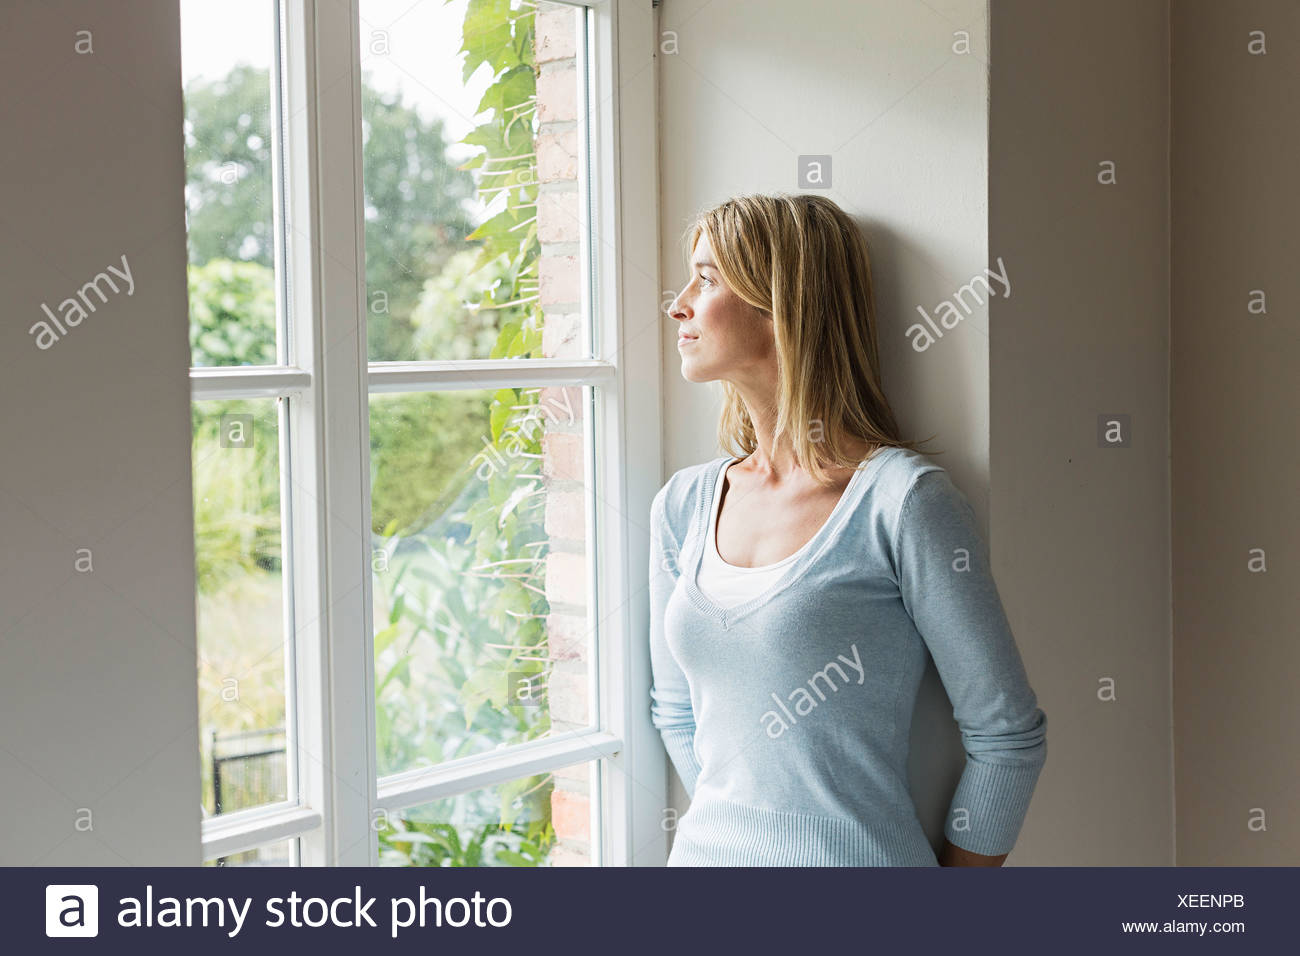 Portrait of mid adult woman looking out of window Photo Stock